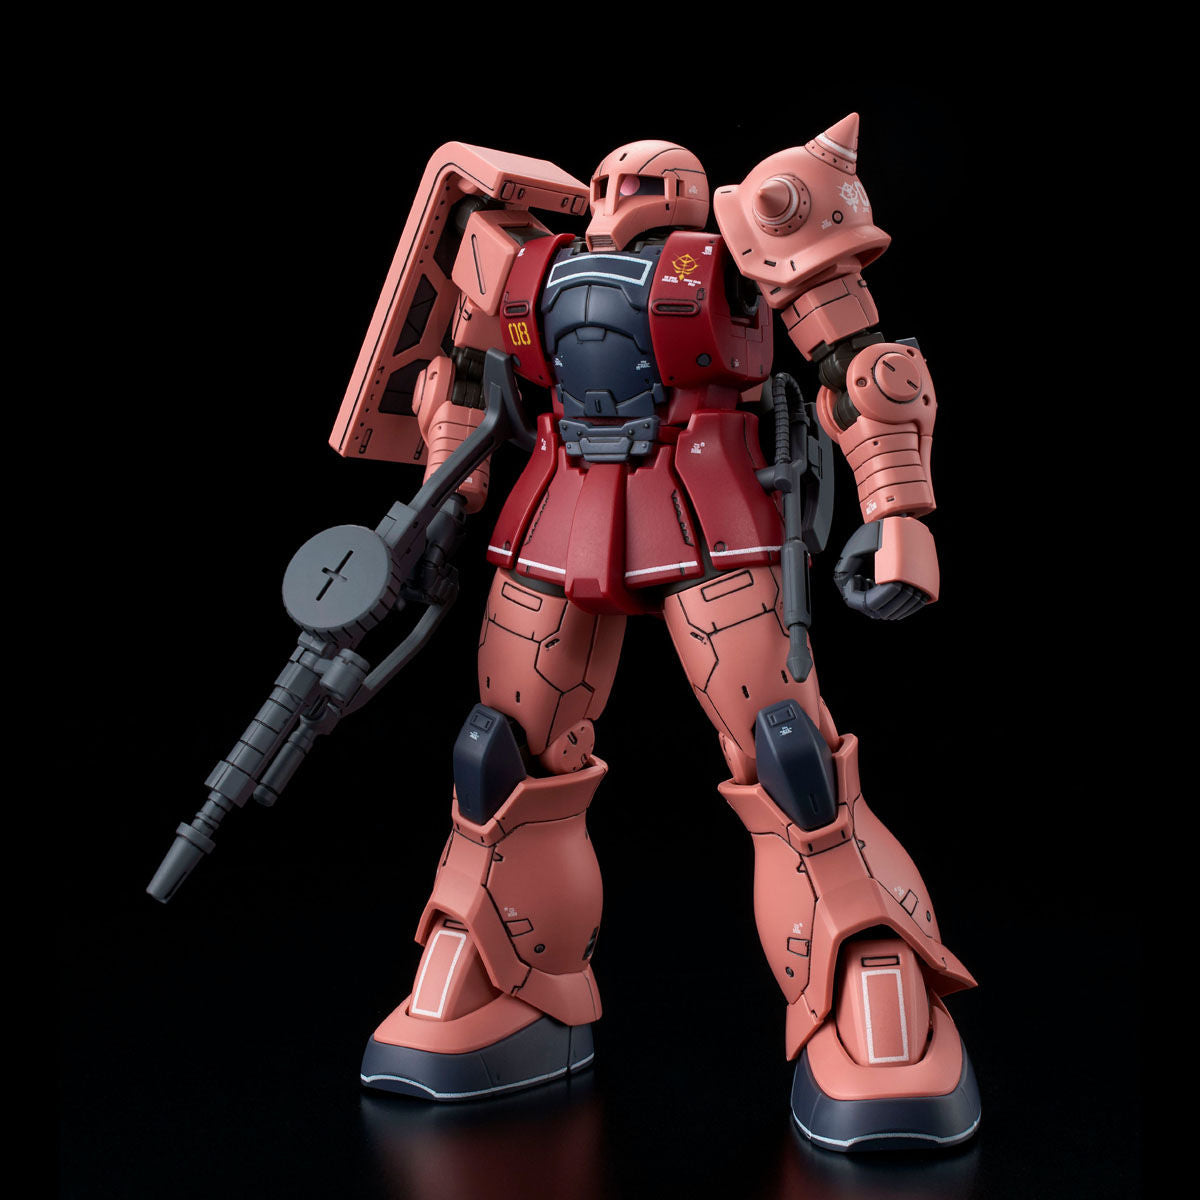 P-Bandai: HG 1/144 Char's Zaku I Limited Package Version [End of September]